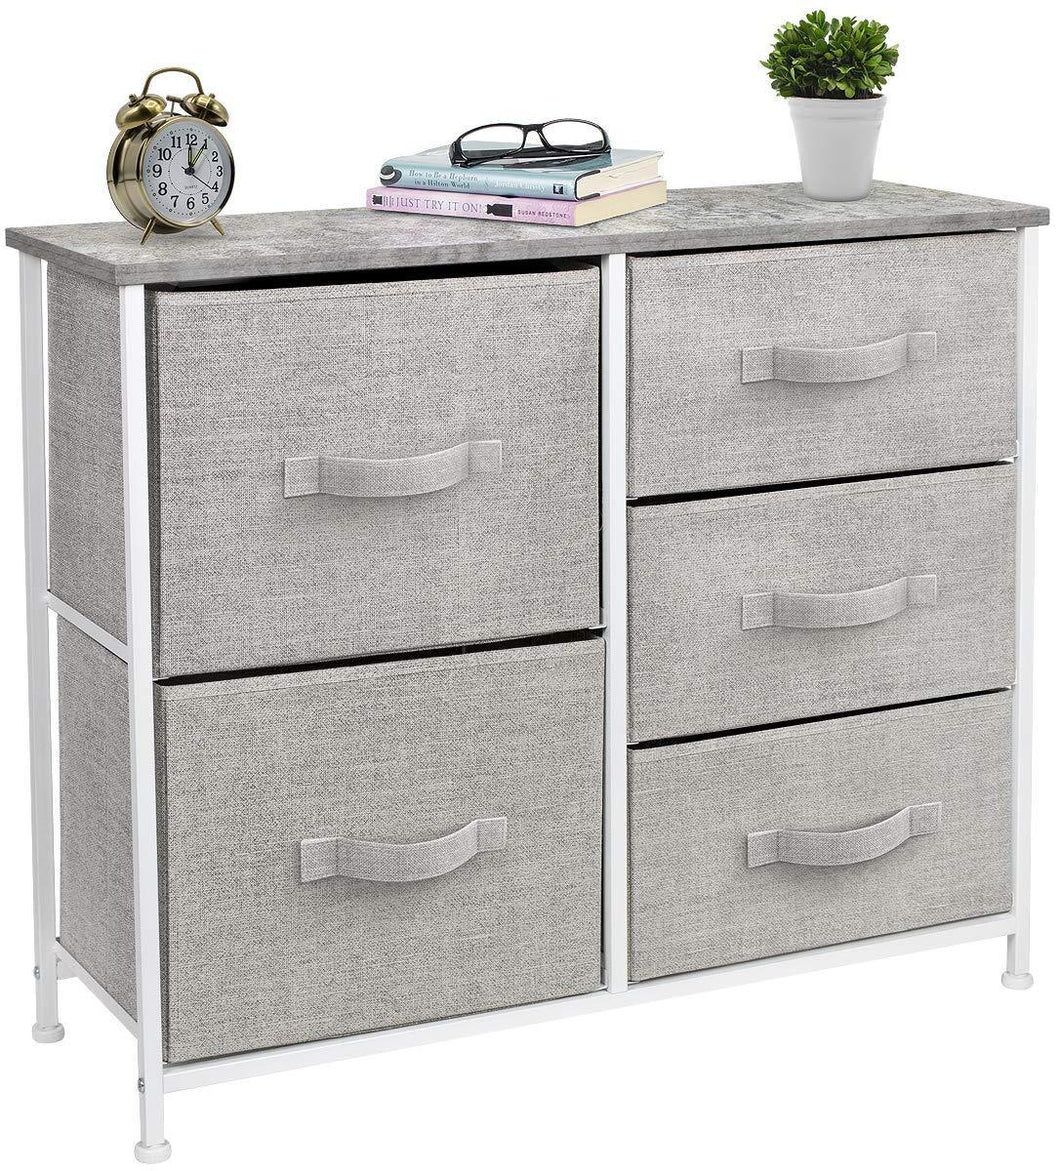 Latest sorbus dresser with 5 drawers furniture storage tower unit for bedroom hallway closet office organization steel frame wood top easy pull fabric bins gray